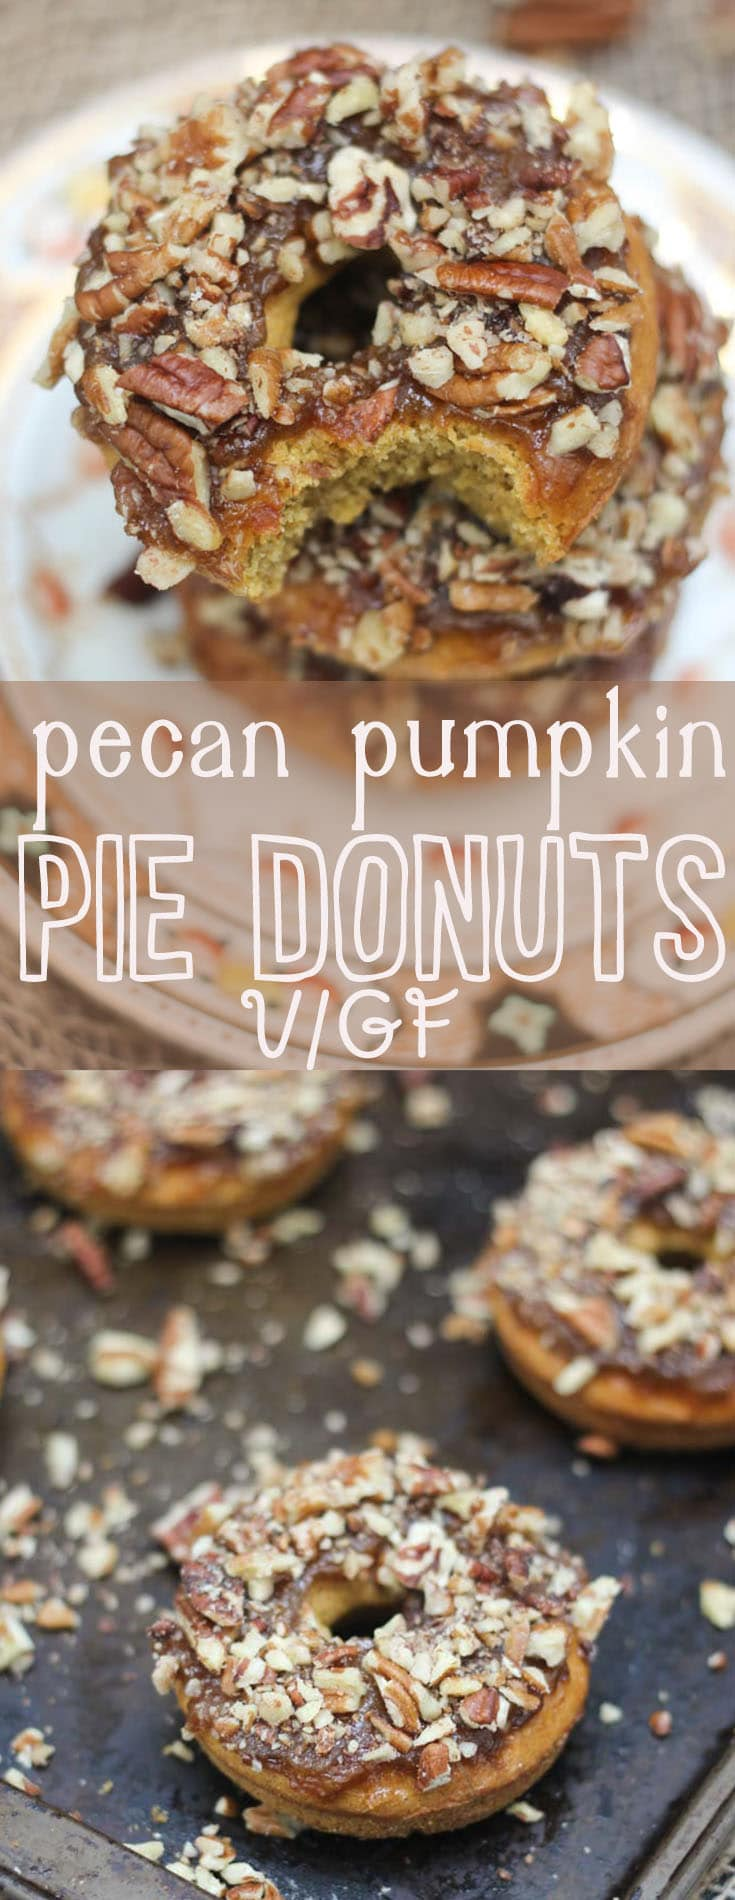 Try my Homemade Baked DIY Vegan and Gluten Free Pecan Pumpkin Pie Donuts. #healthyrecipes #donuts #pumpkin #vegandessert #vegandonuts #glutenfreedesserts #bakedgoods #easyrecipe #diy #healthydonuts